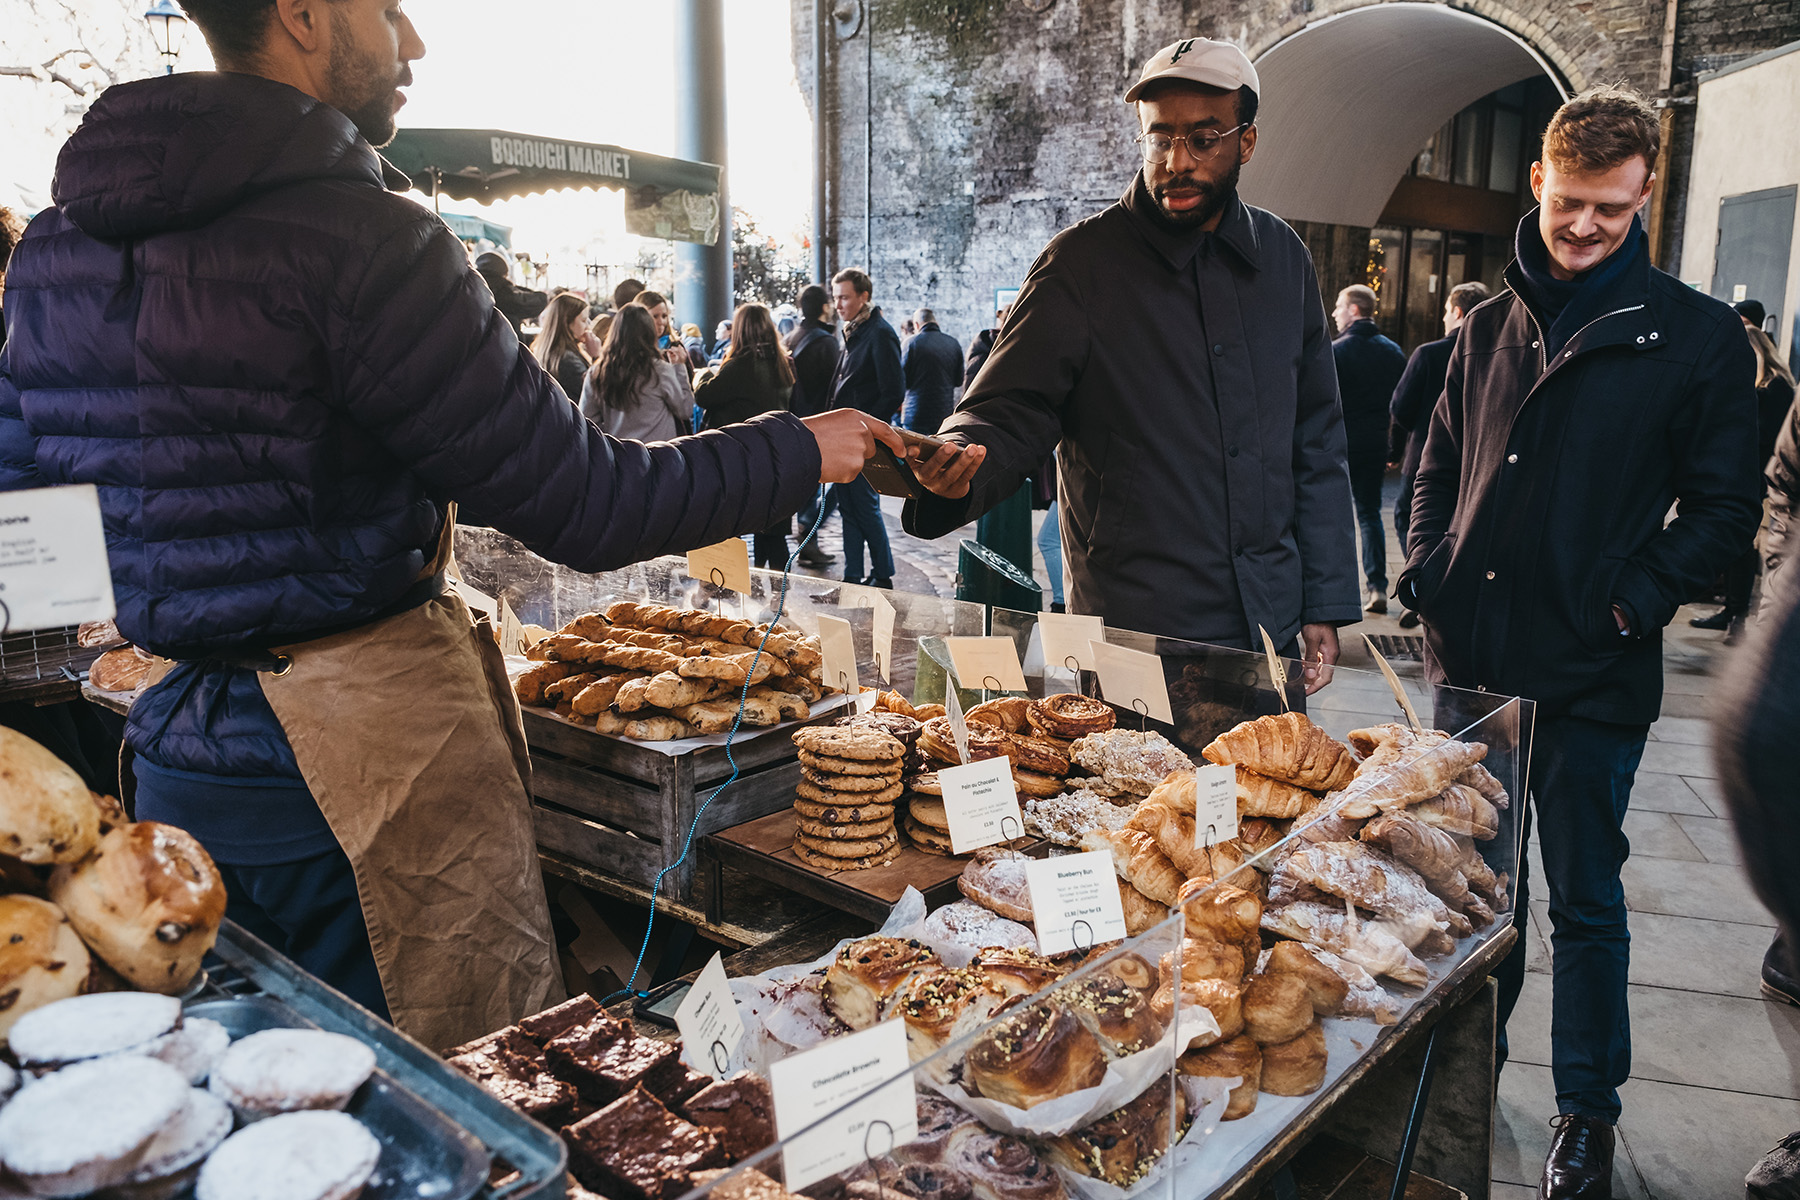 A man makes a payment with his mobile phone at a market in London